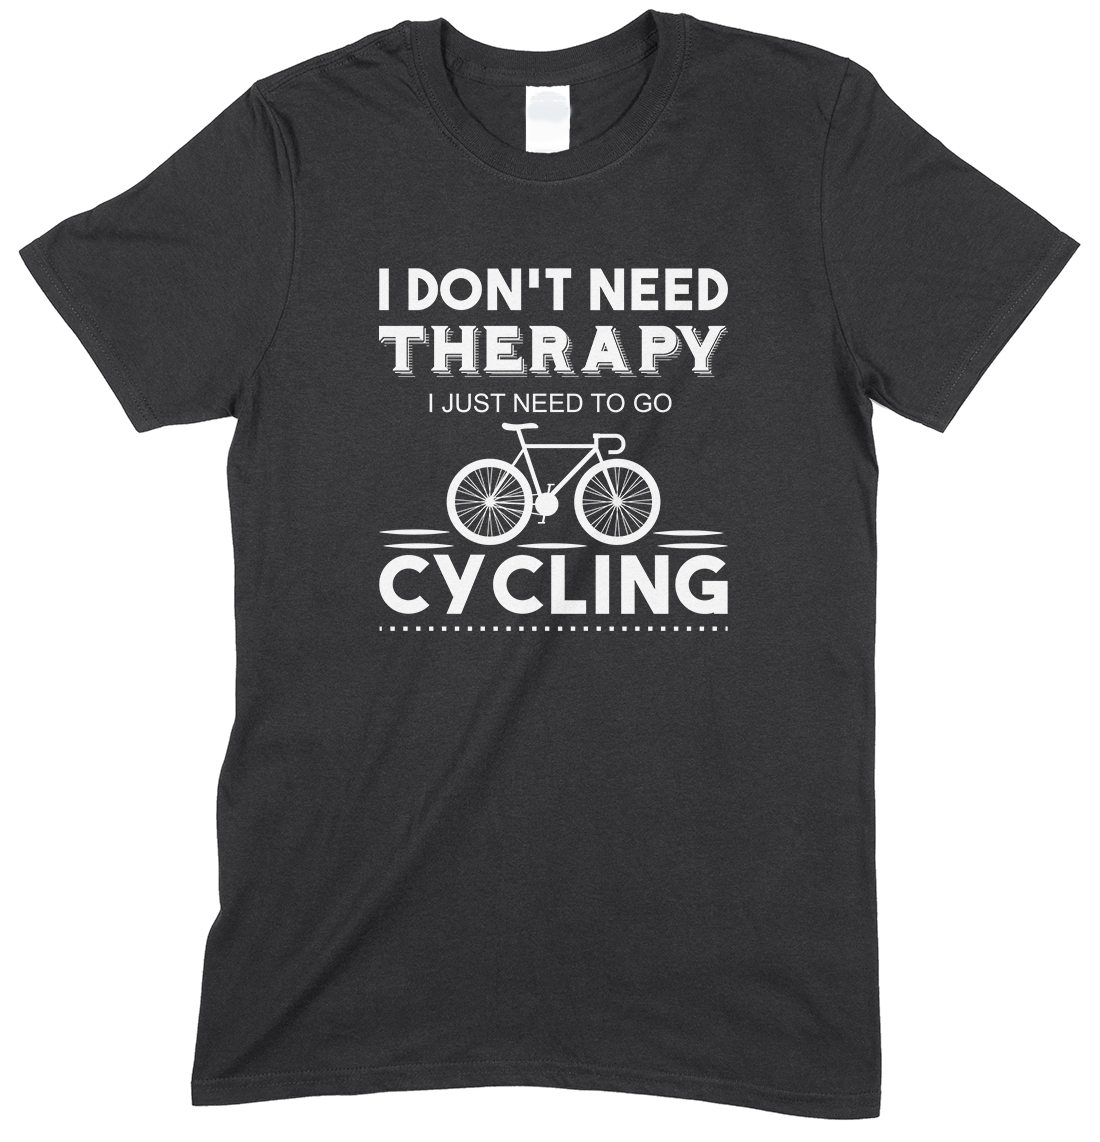 I Don't Need Therapy I Just Need to Go Cycling - Unisex T Shirt